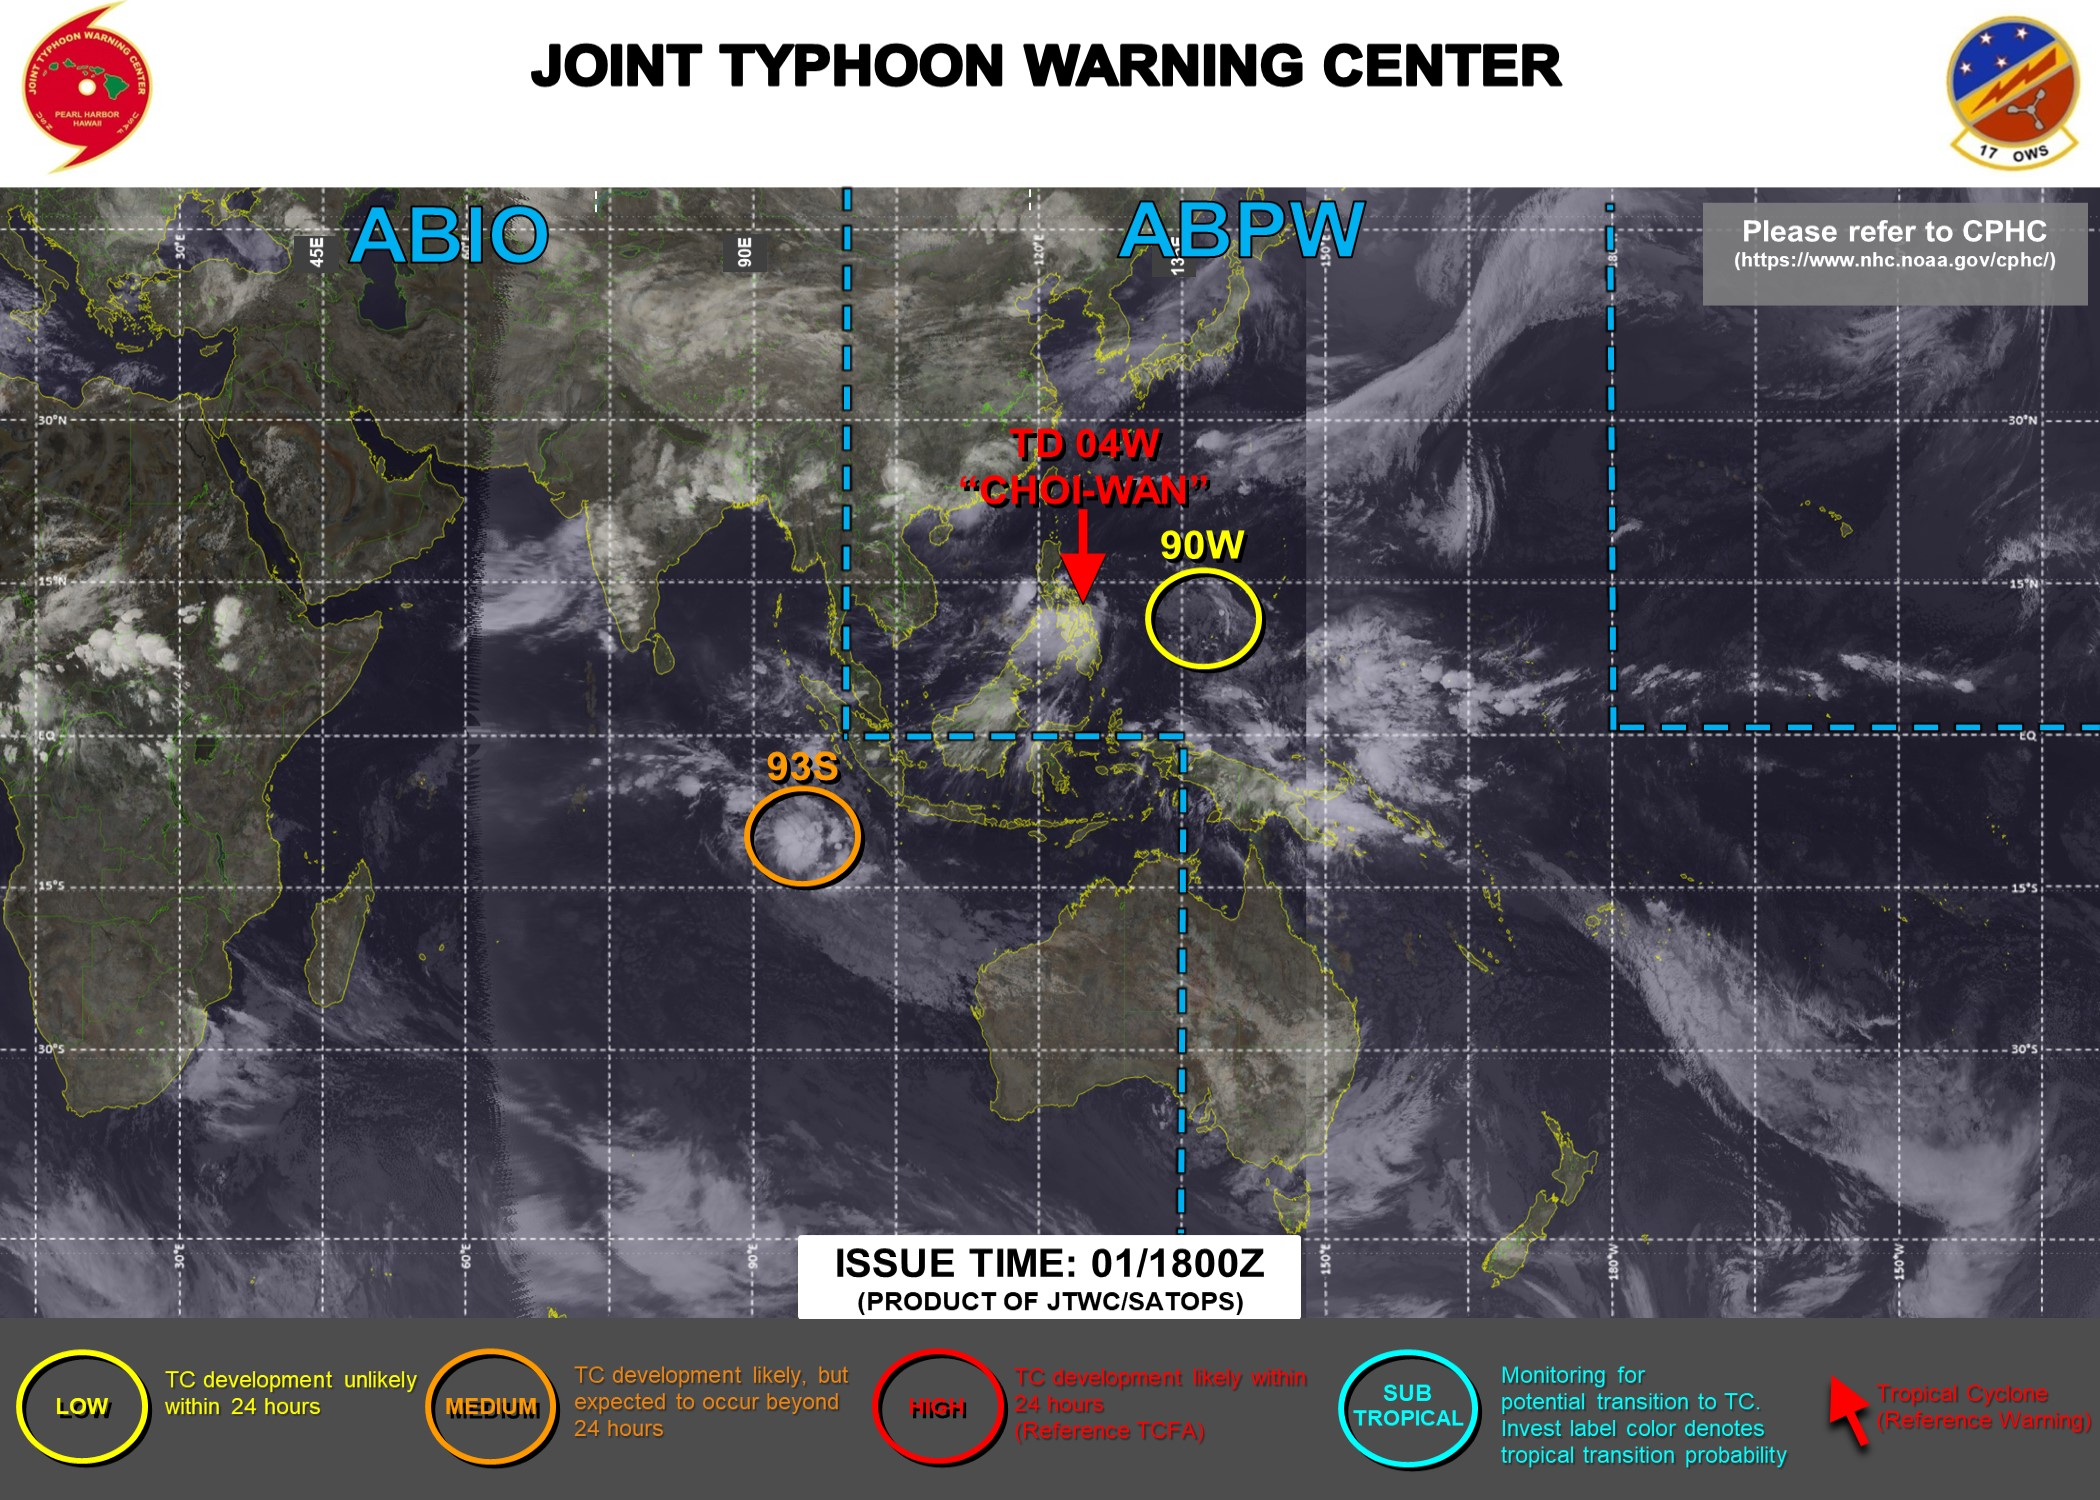 01/18UTC. JTWC HAS BEEN ISSUING 6HOURLY WARNINGS AND 3HOURLY SATELLITE BULLETINS ON TD 04W. 3HOURLY SATELLITE BULLETINS ARE ISSUED FOR INVEST 93S.